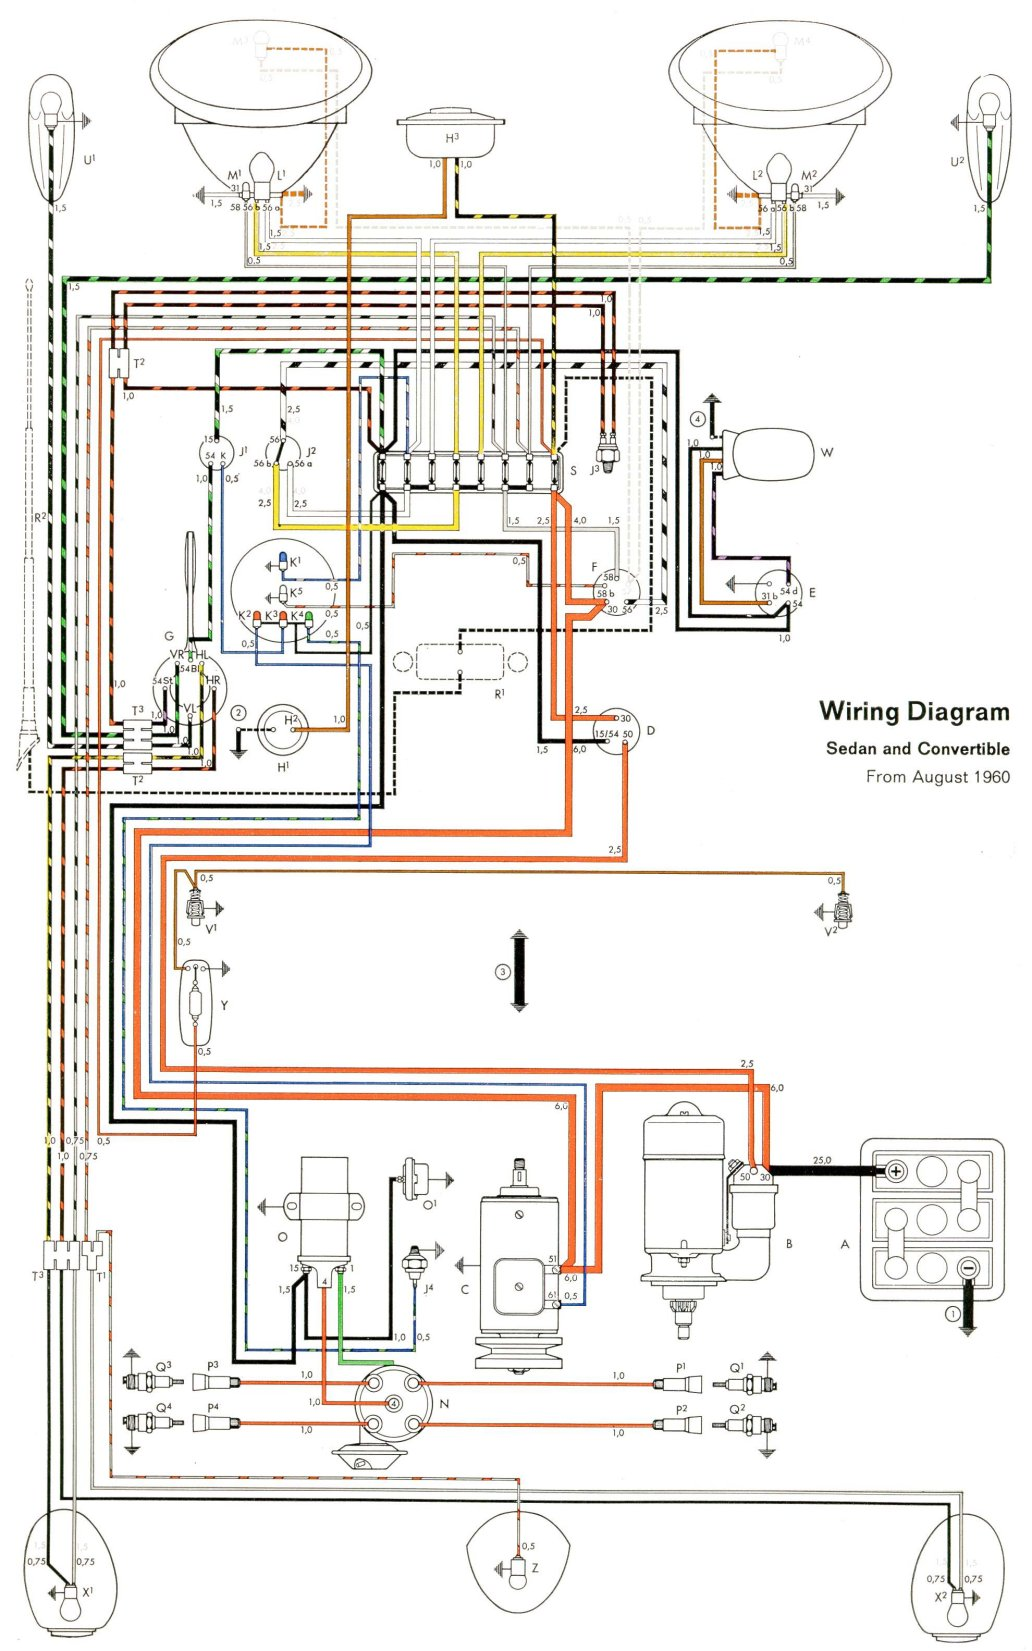 Thesamba Com Type 1 Wiring Diagrams 2013 Beetle Fuse Panel Diagram Vw  Beetle Fuse Diagram